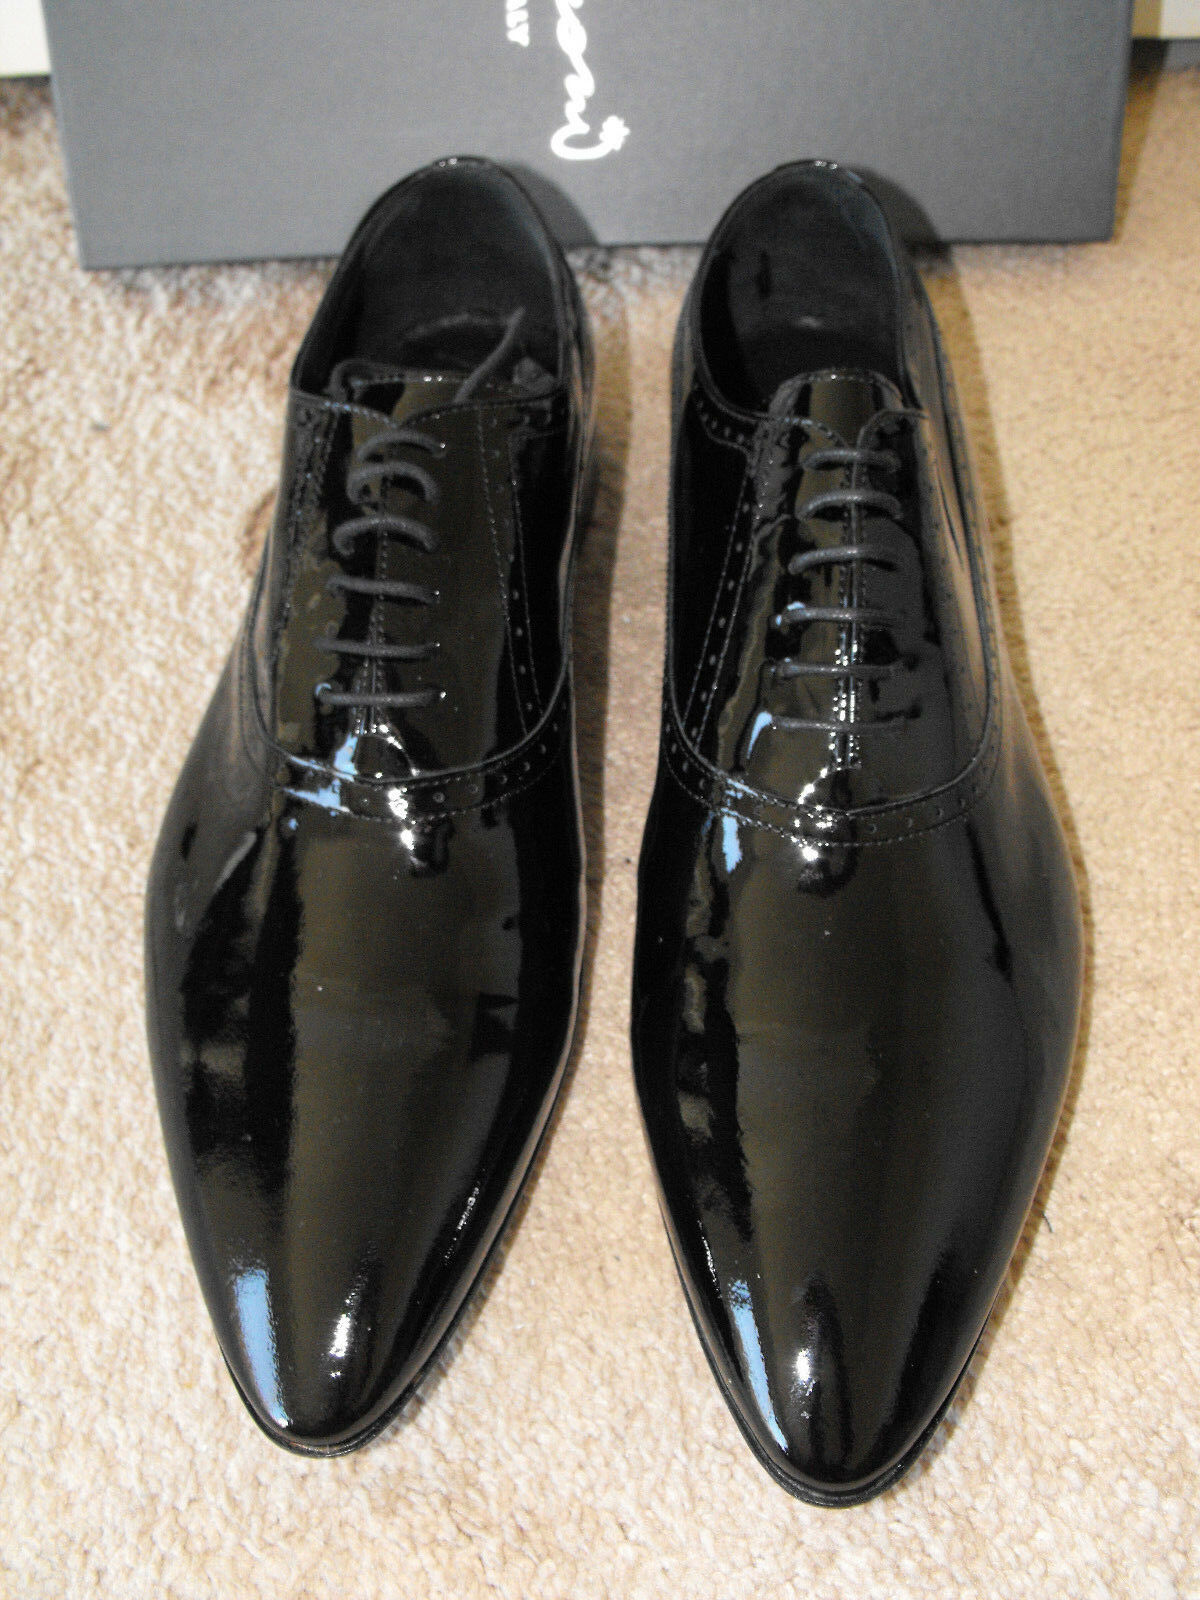 Scarpe casual da uomo  NIB $495 FRANCESCONI ITALY Handmade Patent Leather Oxfords EU 45 US 12